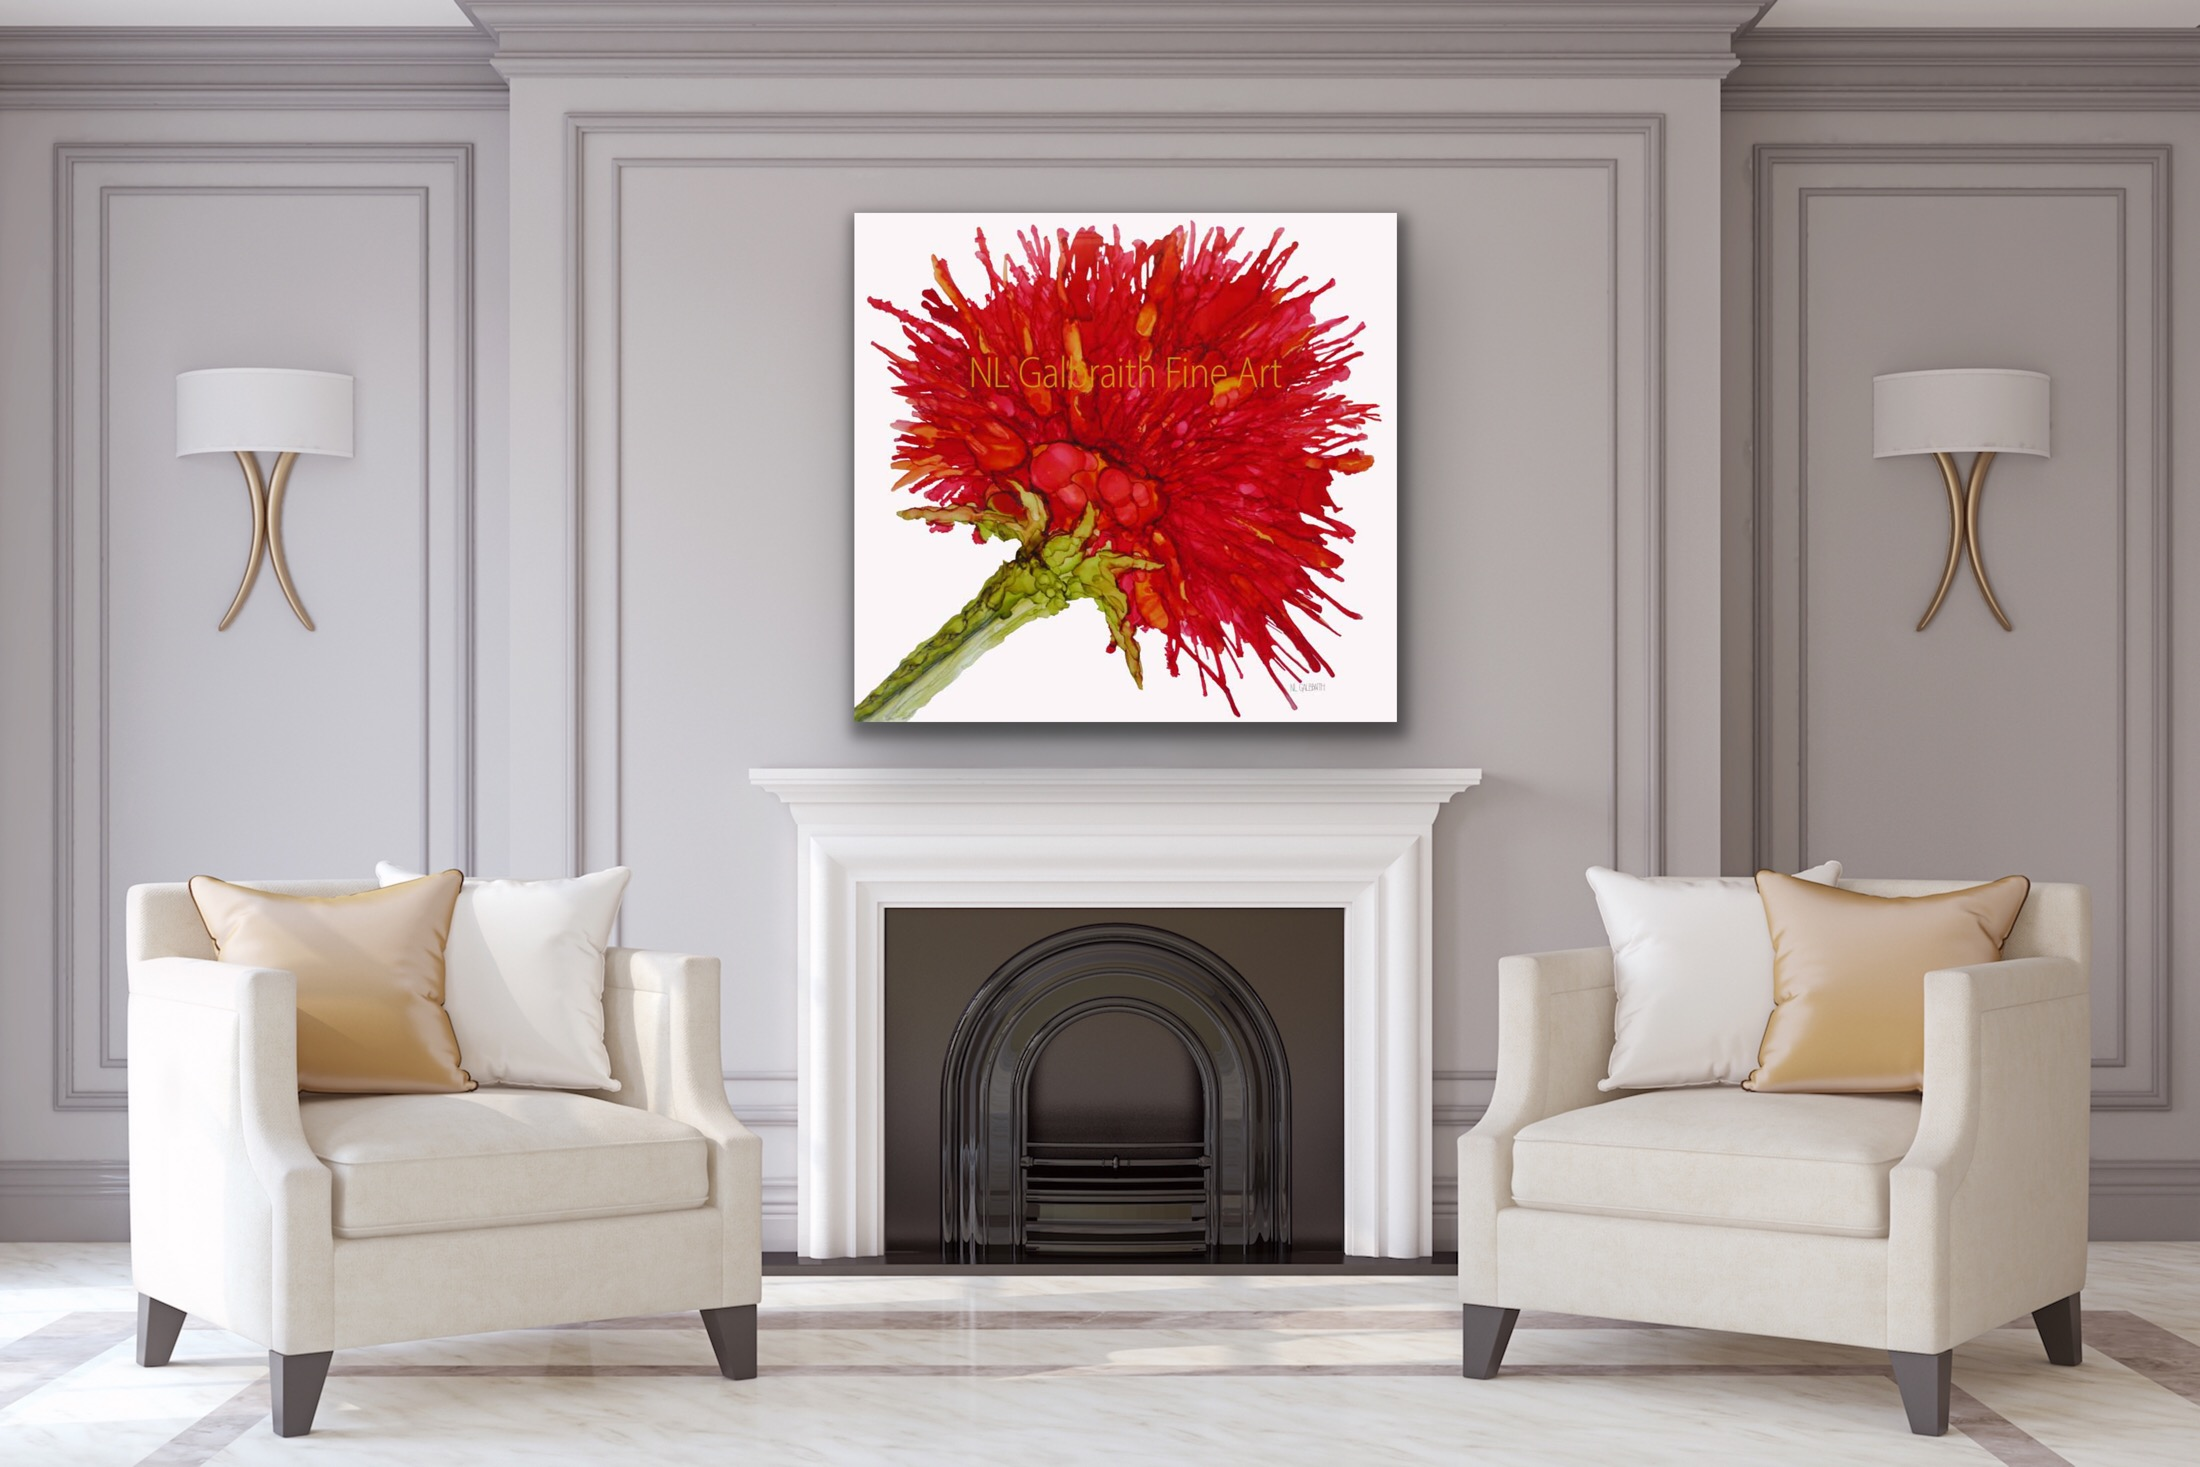 Fine Art Large Crimson Red Flower Graphic Over a Fireplace